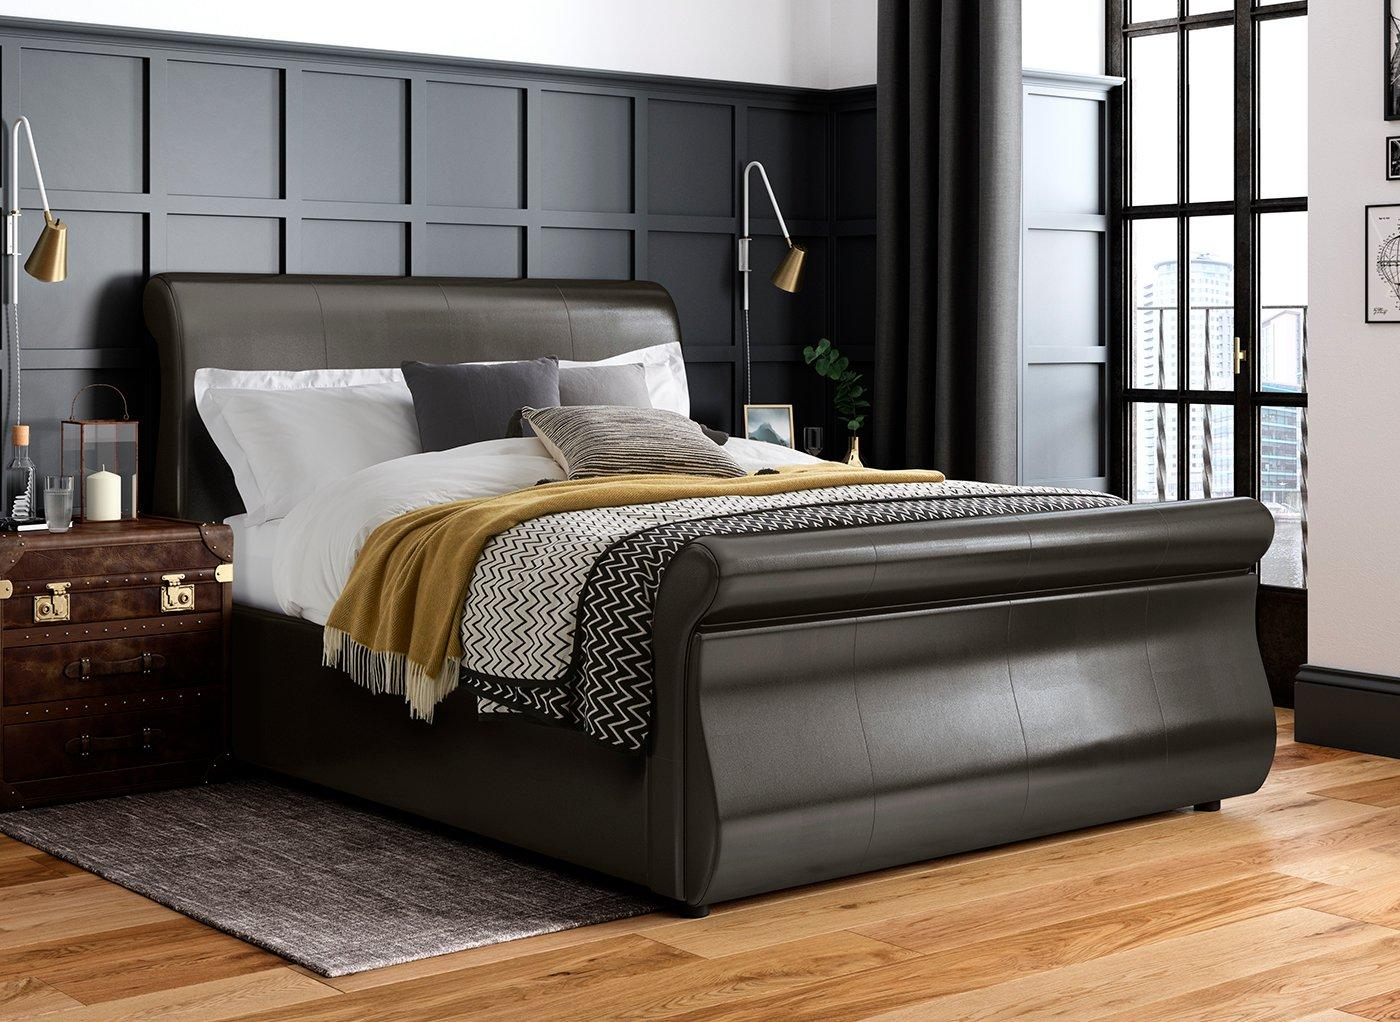 detroit-upholstered-sleigh-bed-frame